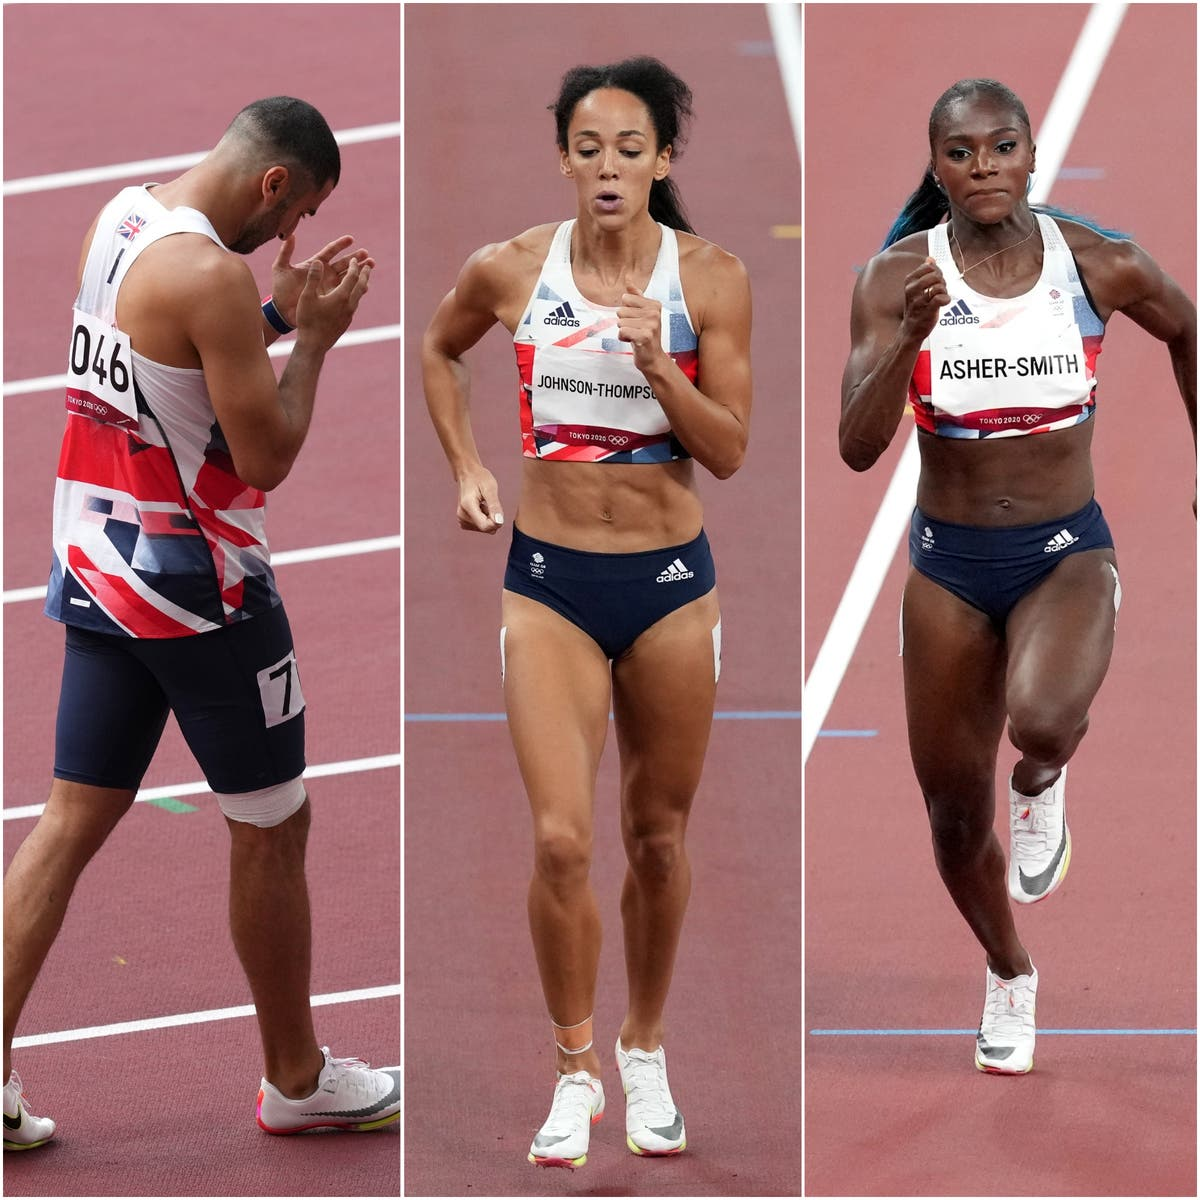 Team GB's athletics medal hopes badly hampered by injury problems in Tokyo.